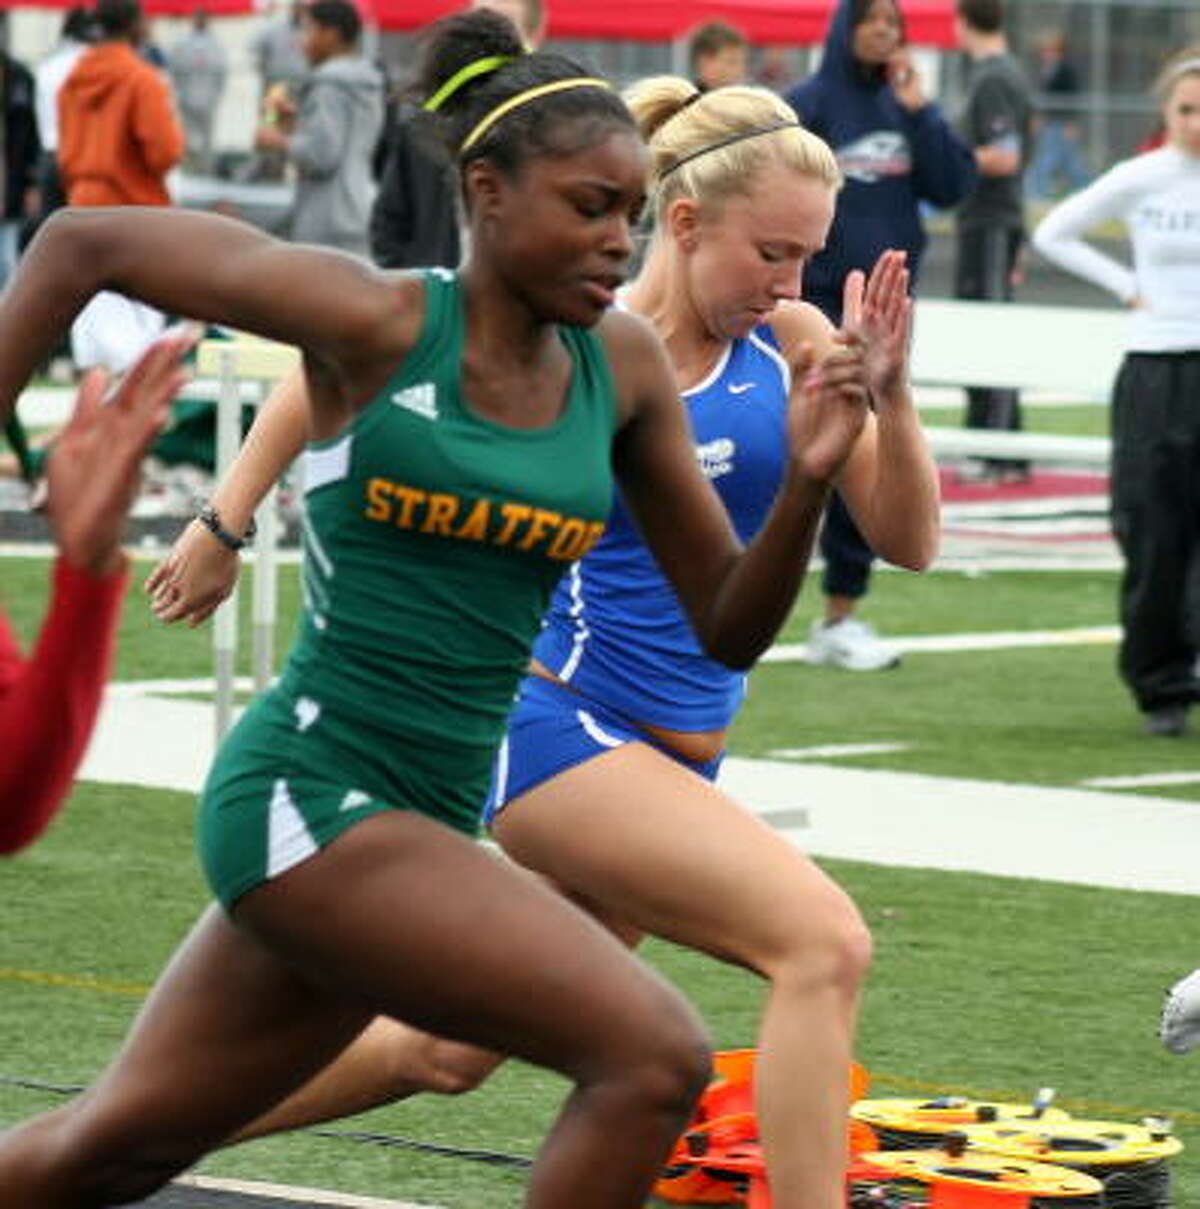 Stratford's Shamaujae Crokett, left, competes in a track event.